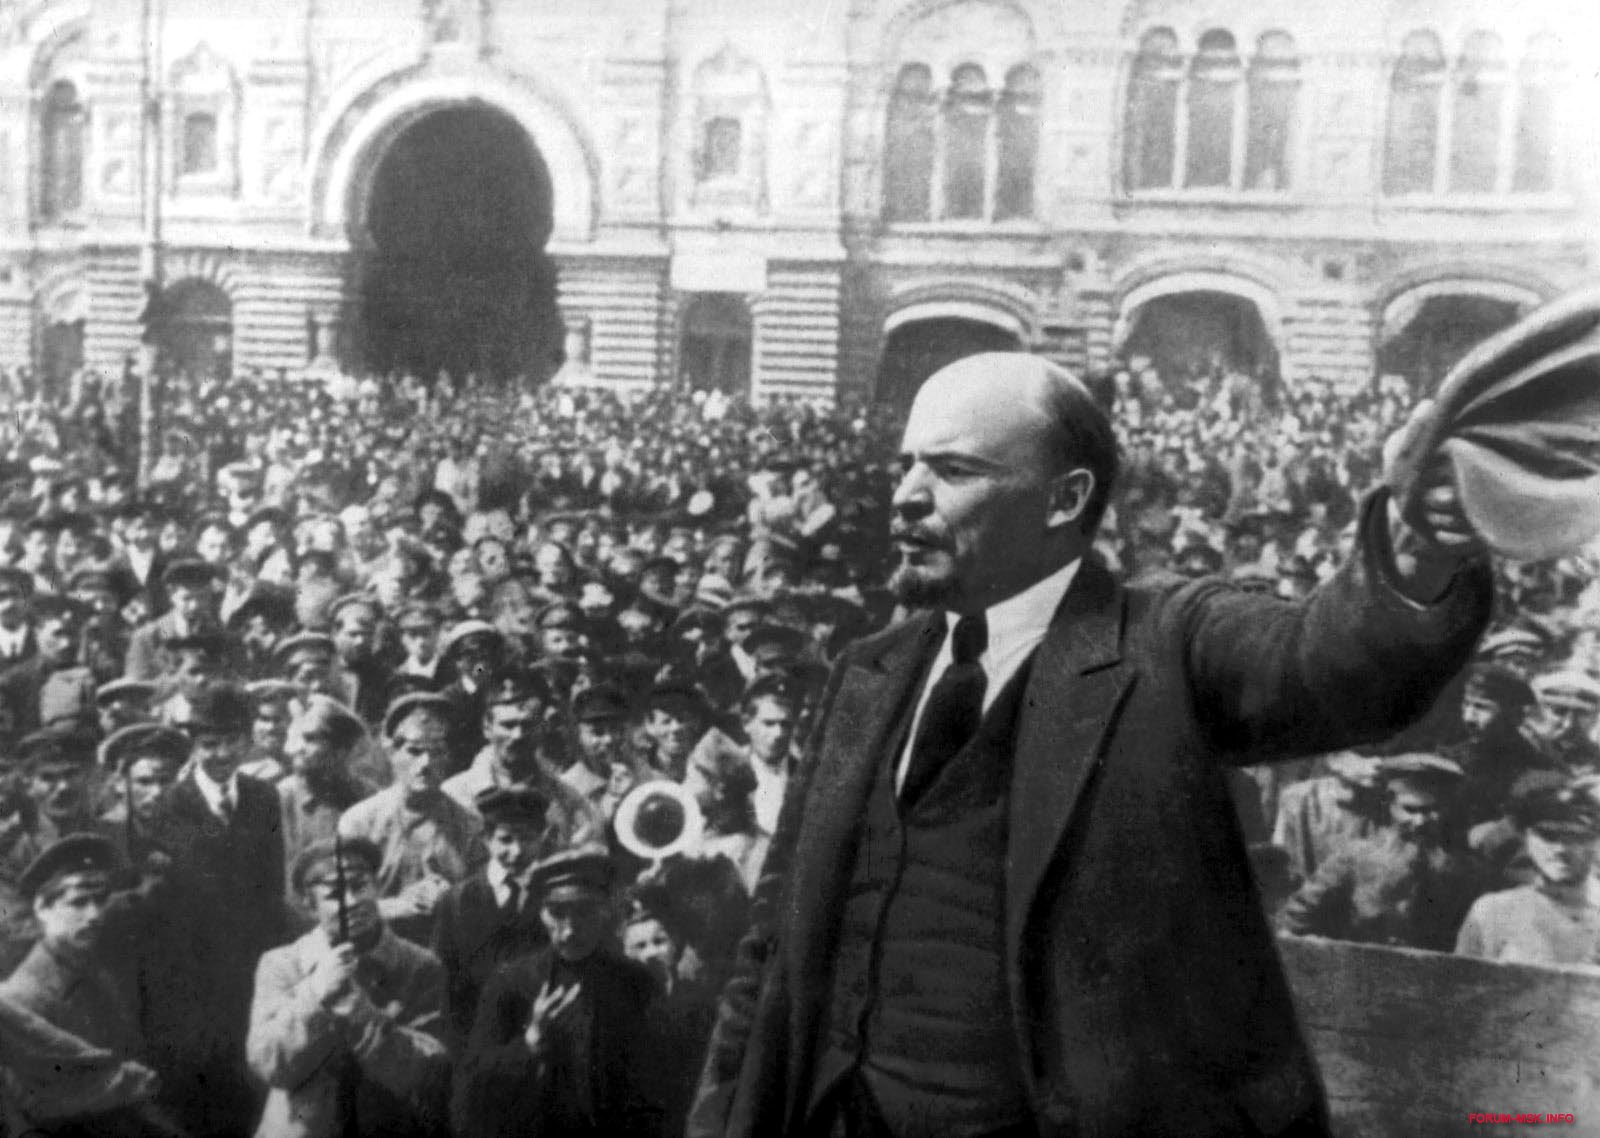 the-russian-revolution-1917-1923-also-known-as-the-october-revolution-led-by-vladimir-lenin.jpg